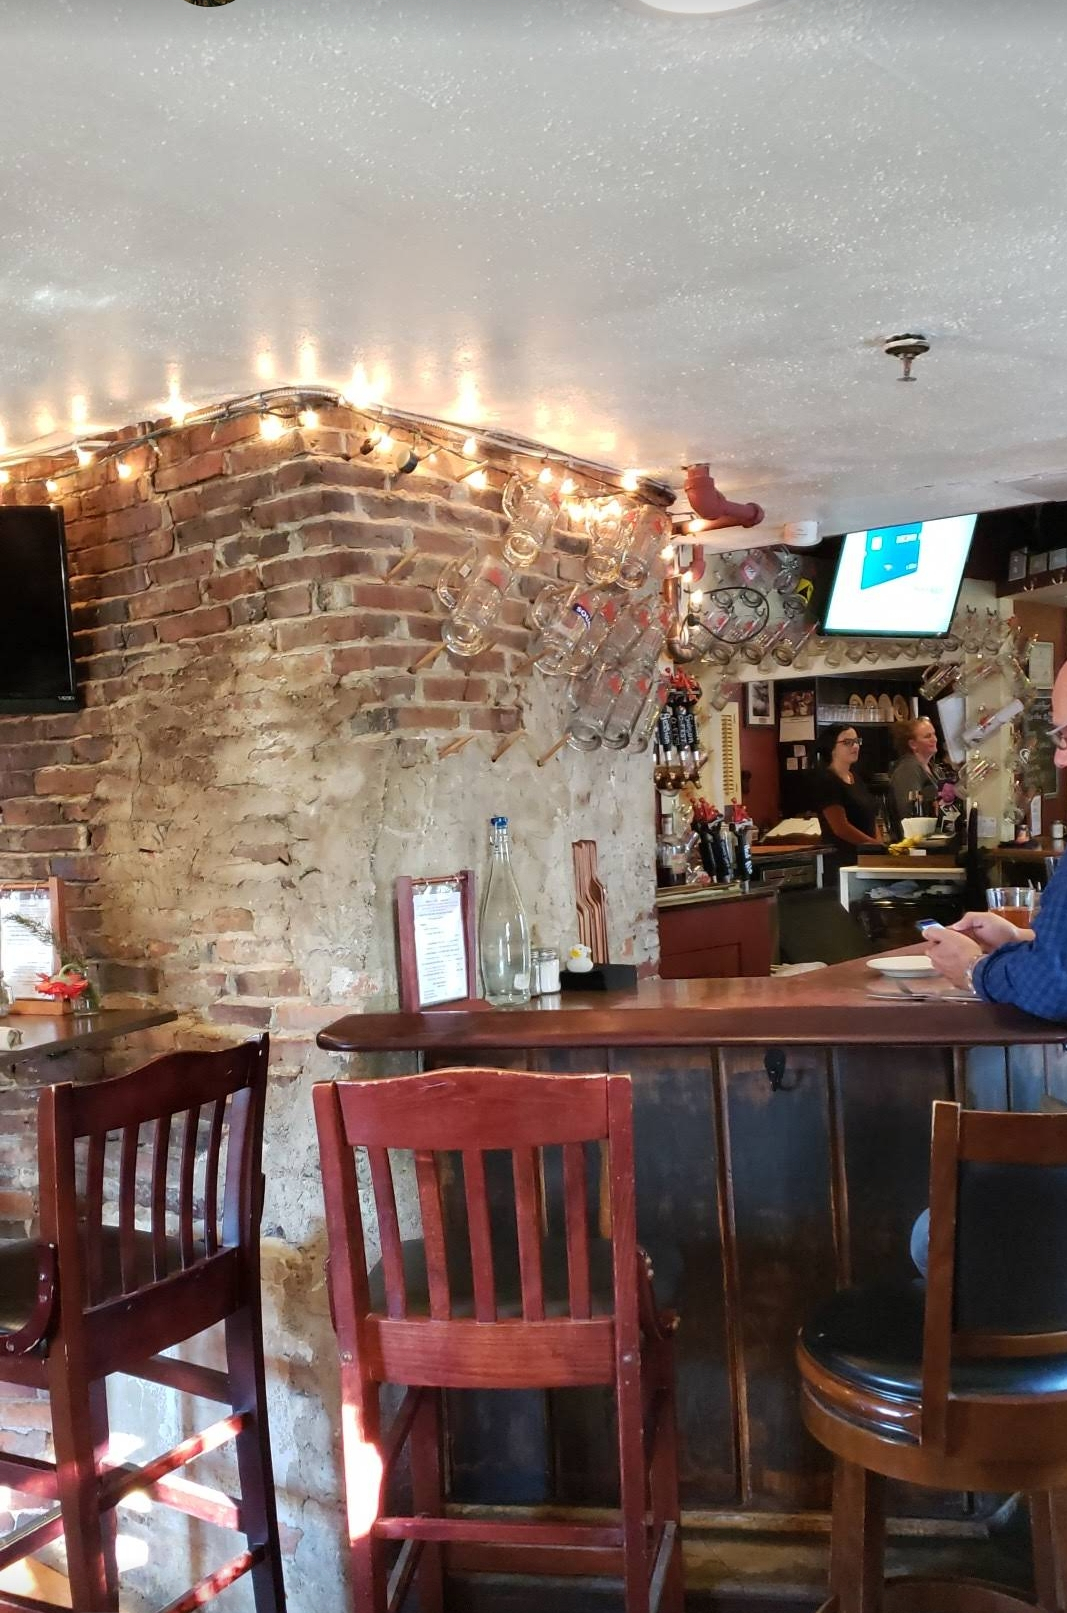 View of the brick walled bar